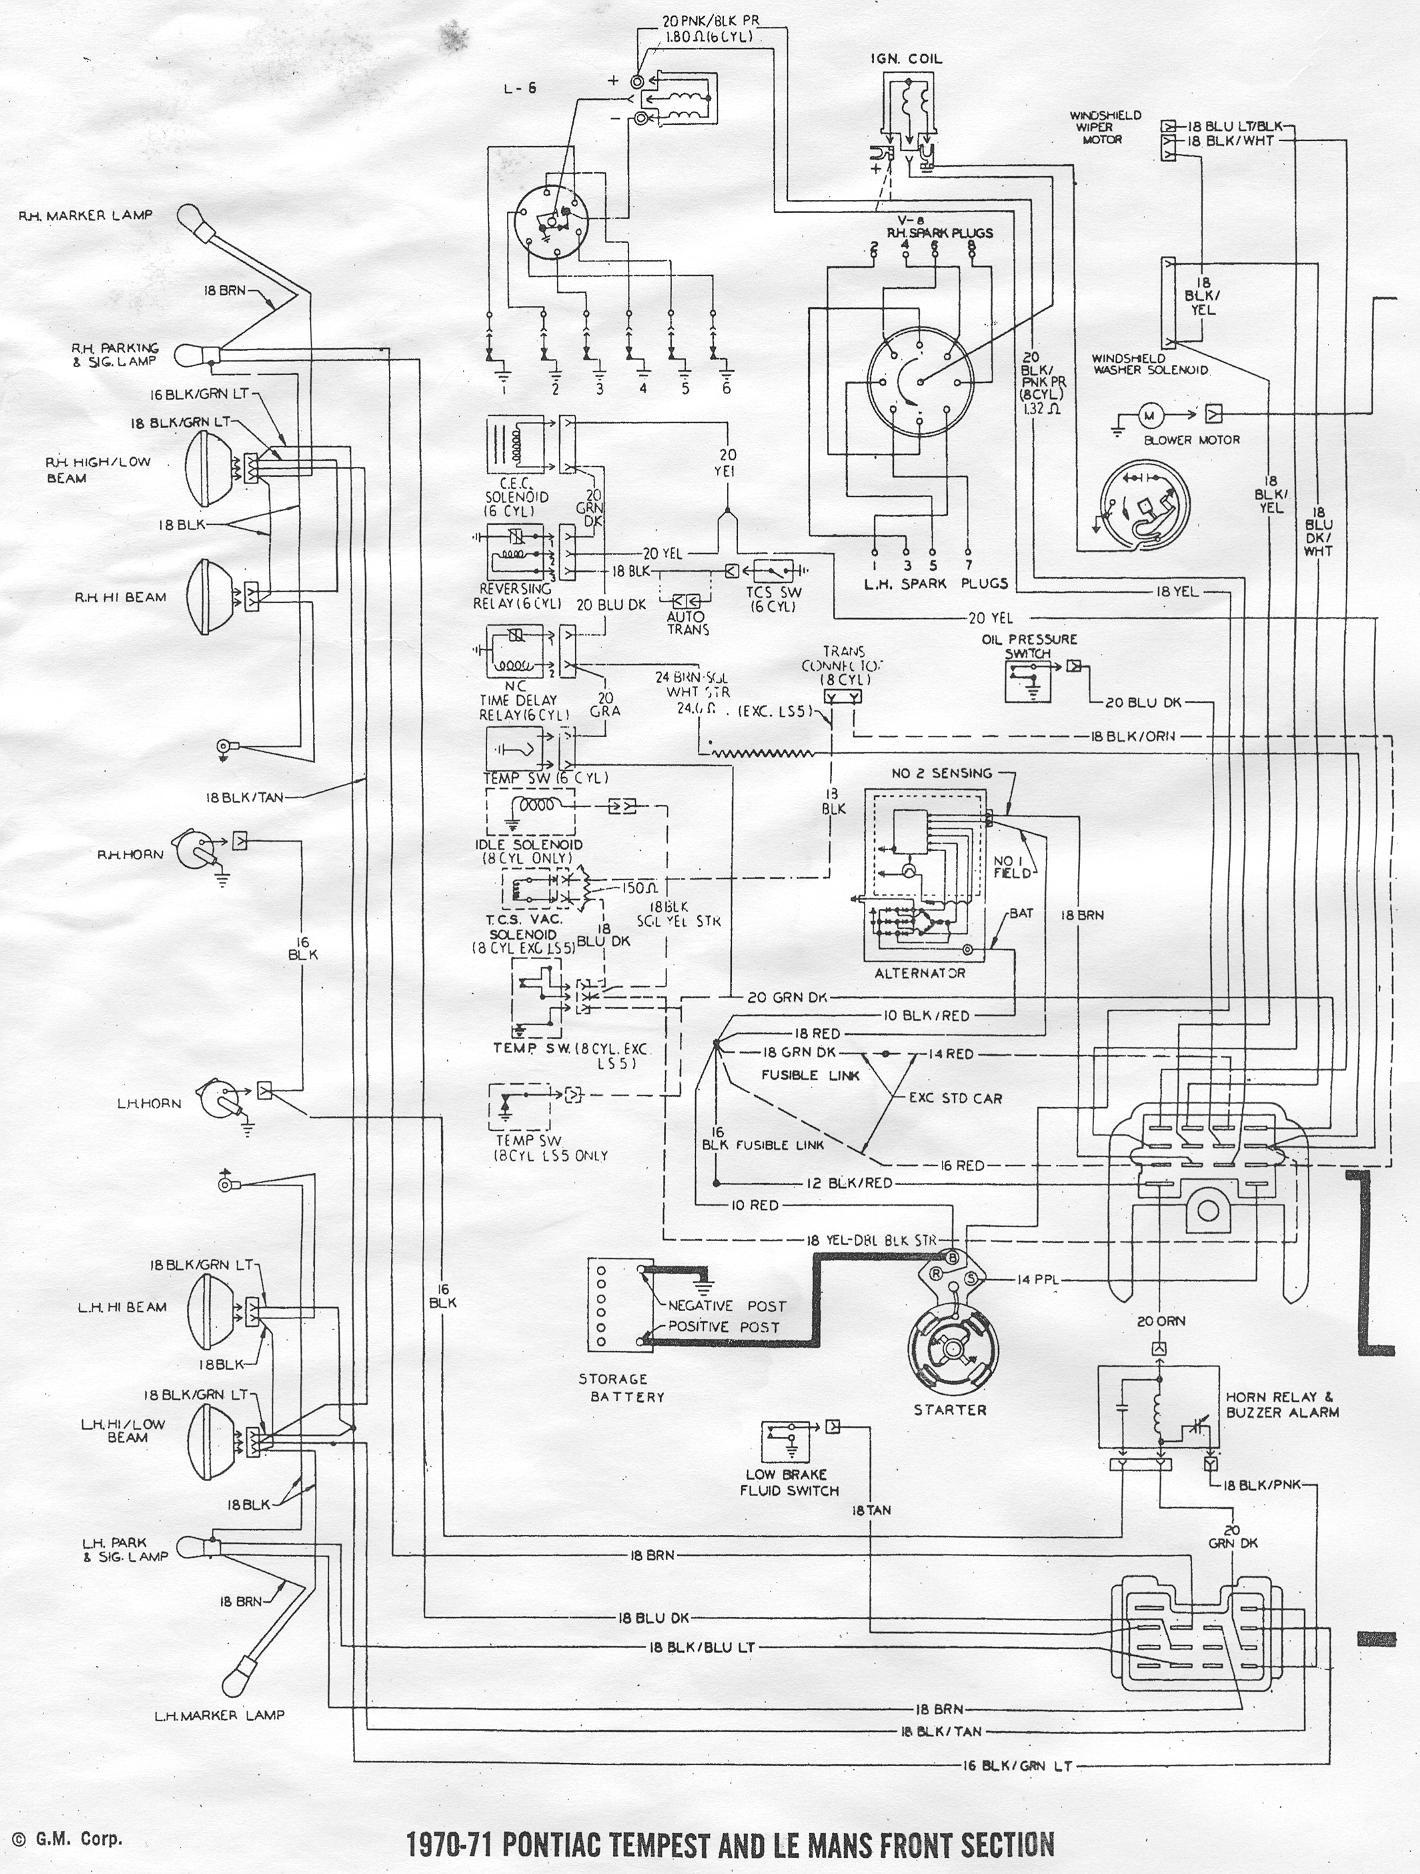 gm wiring schematic 1968 gto wiring diagram scans pontiac gto forum click image for larger version 70 71 gto page1